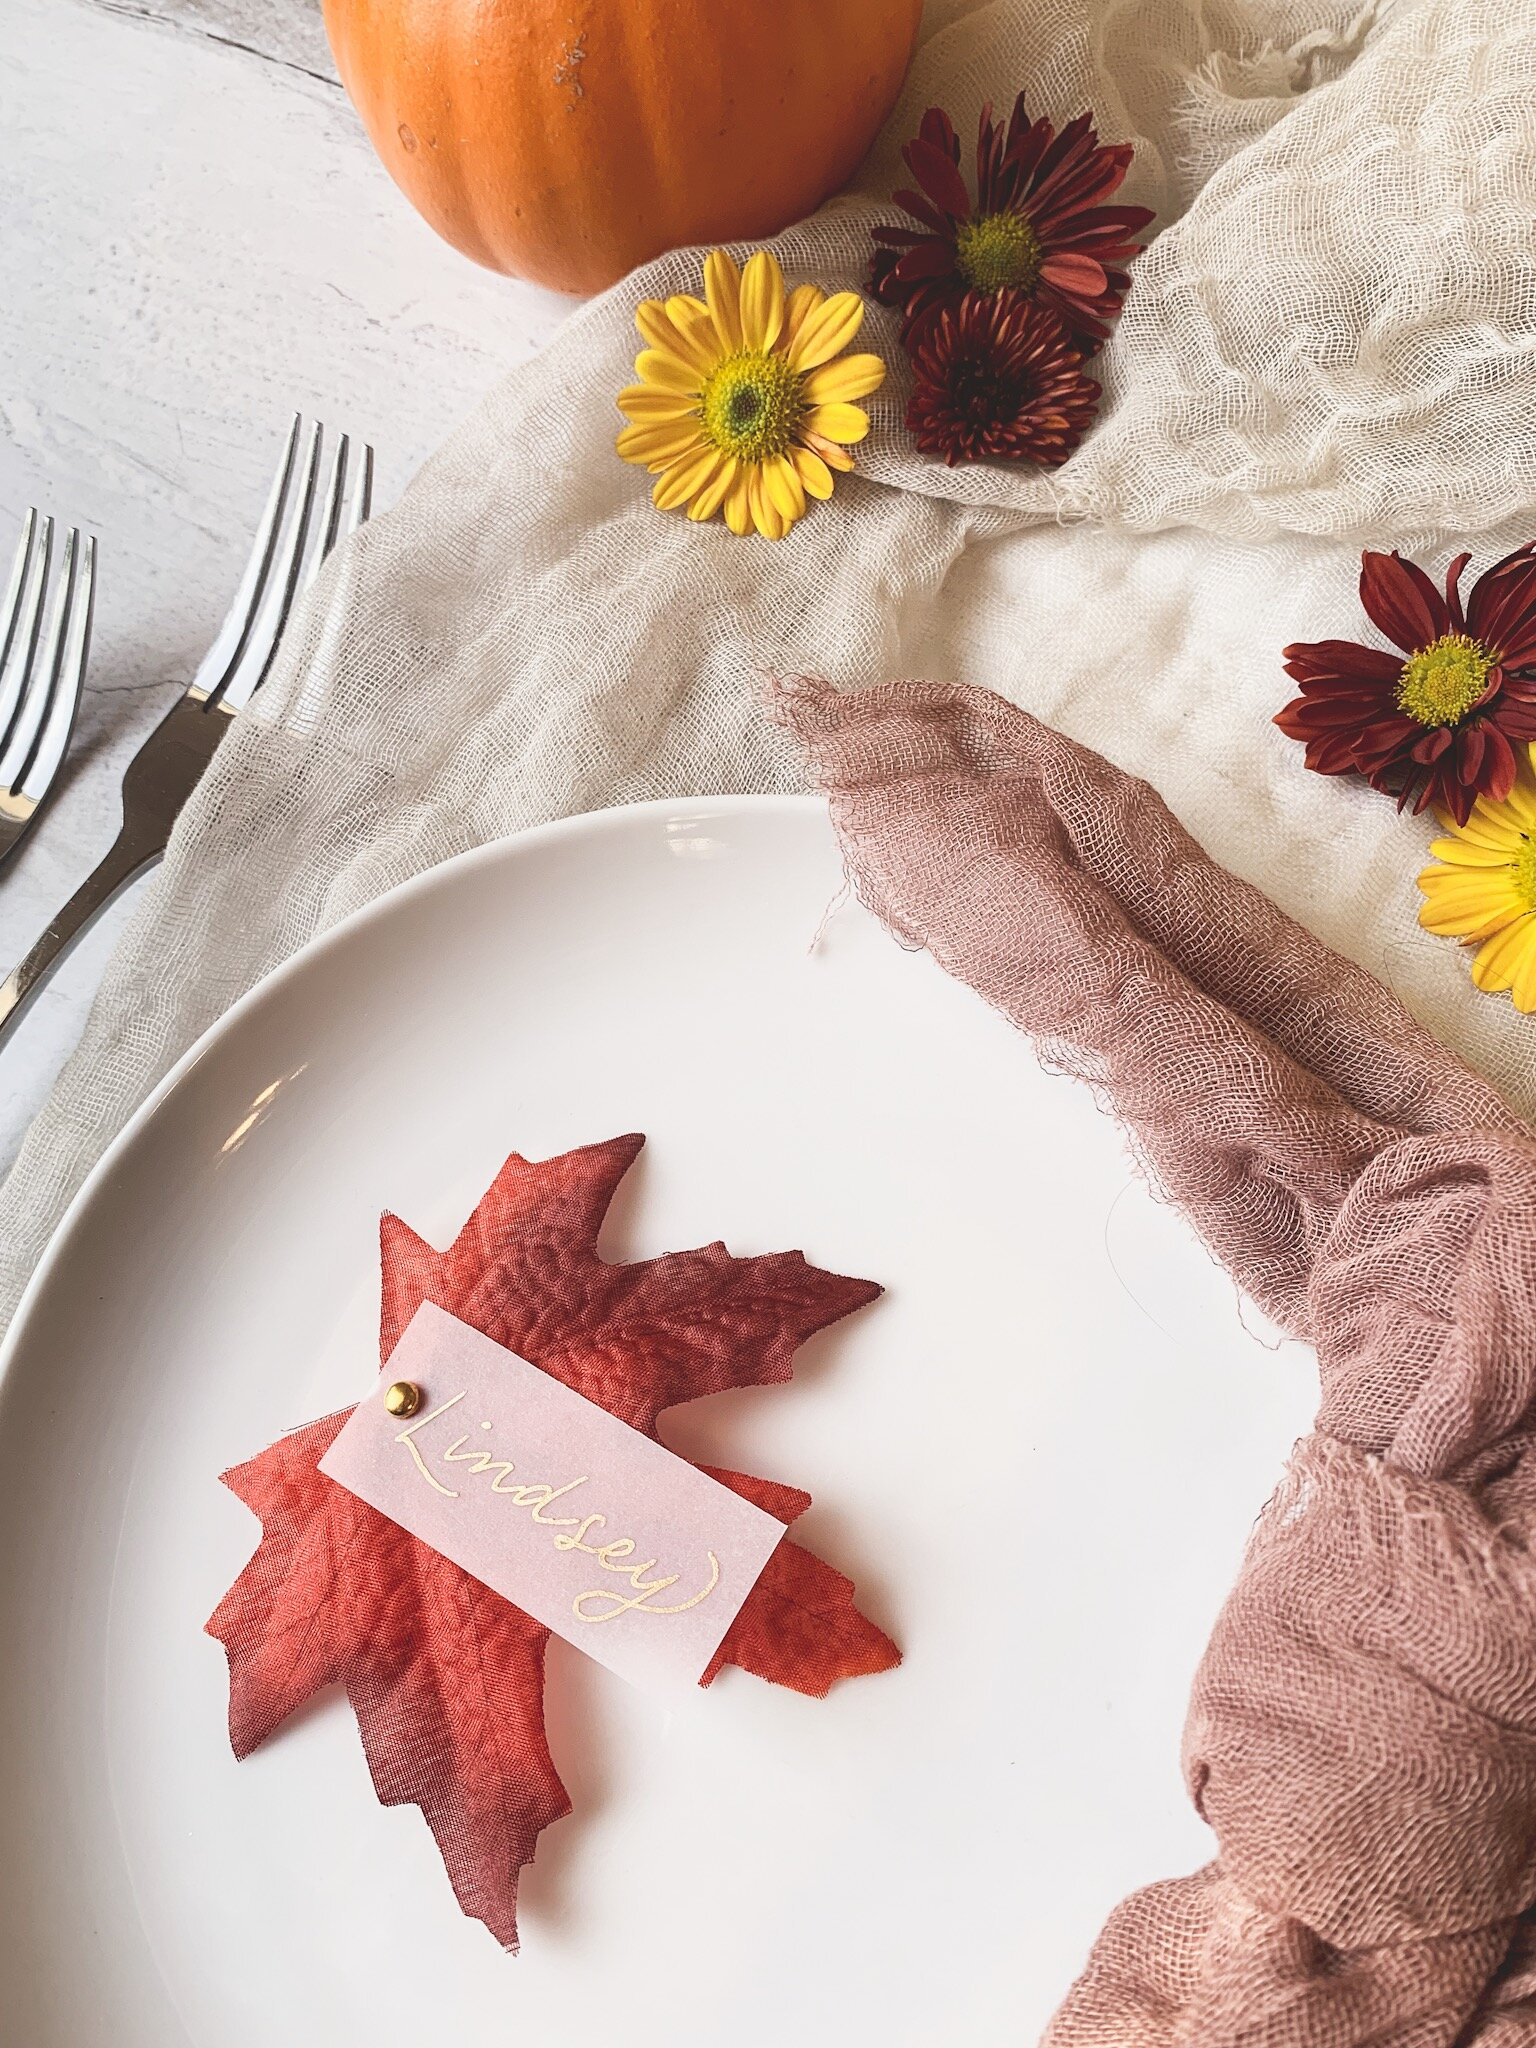 Fall inspired place cards for Thanksgiving dinner